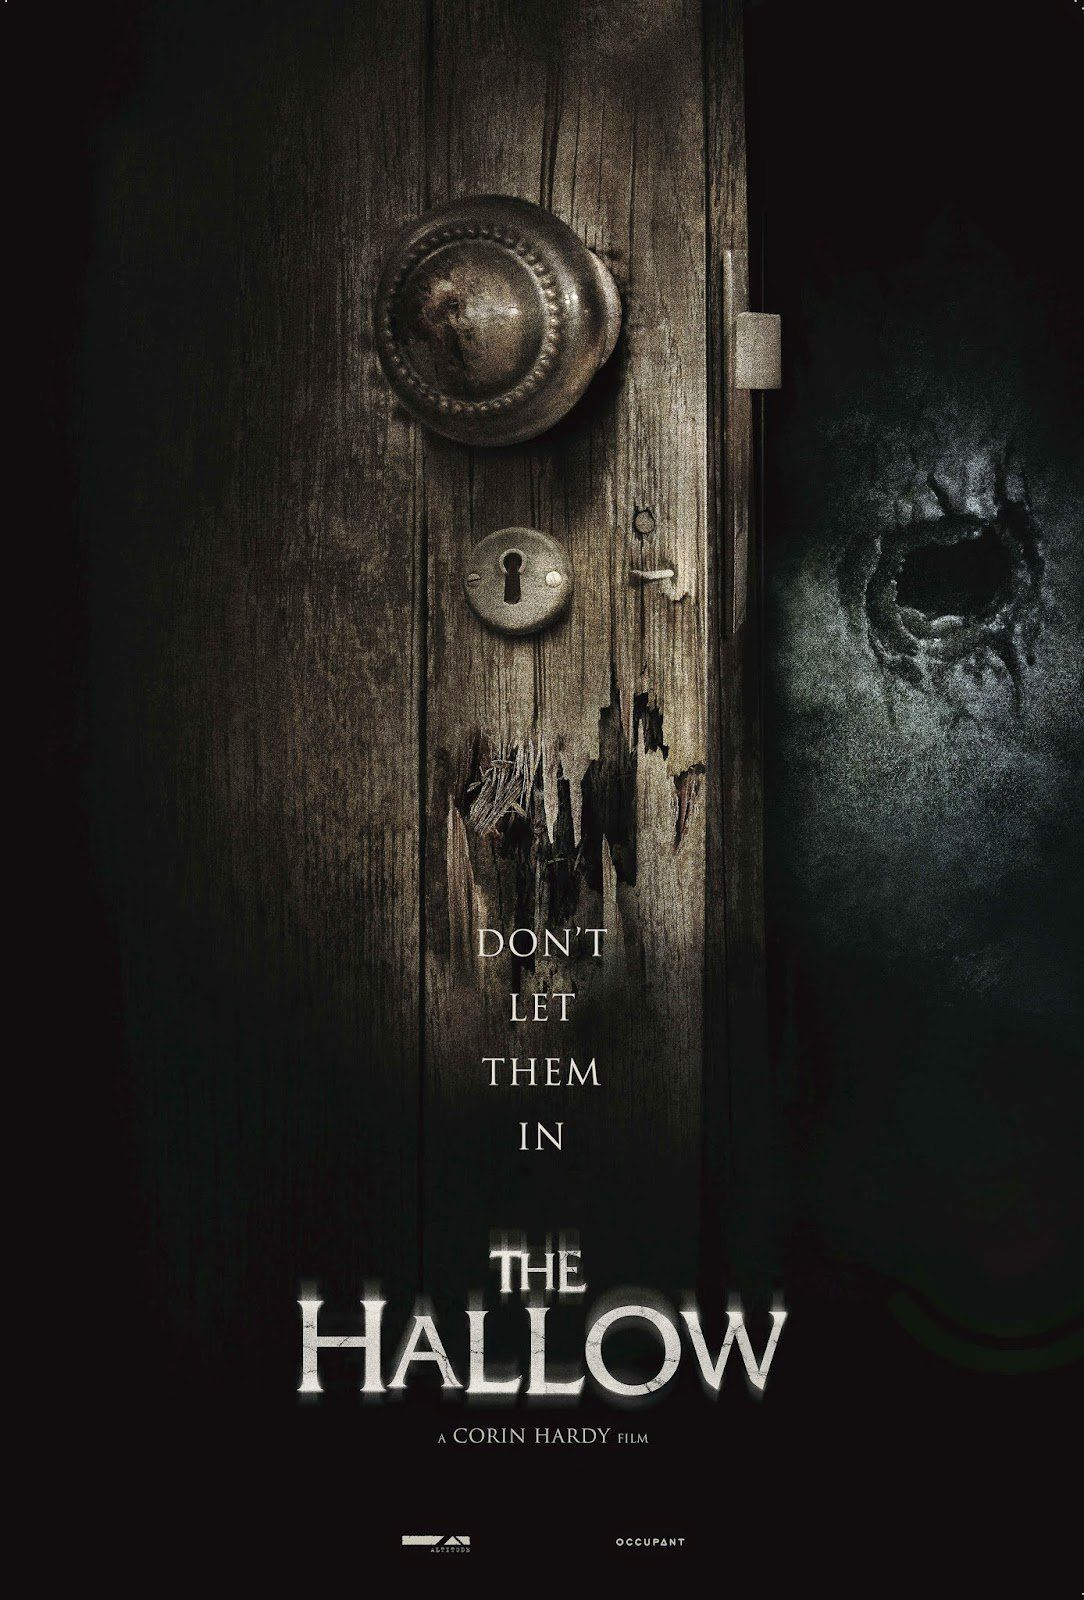 The Hallow 2015 Movie Review Best Horror Movies 2015 Horror Movies Horror Movies